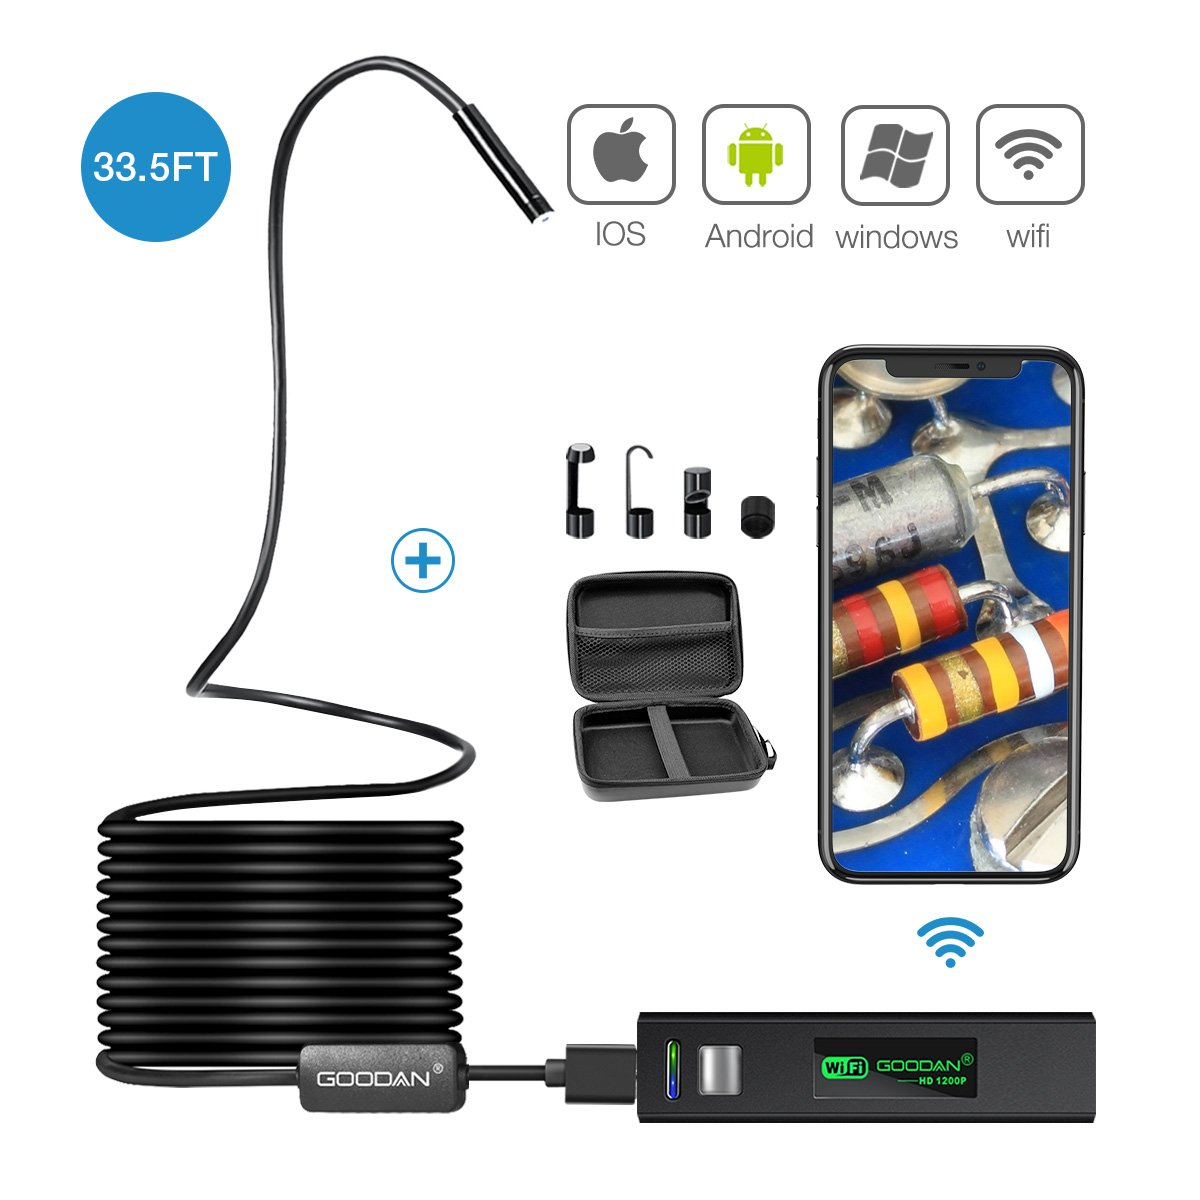 33.5FT Wireless Inspection Camera, GOODAN Updated 1200P HD Wifi Endoscope borescope with 2.0 Megapixels Snake Camera for Iphone Android Smartphone, Table, Ipad, PC (10M WIFI ENDOSCOPE)